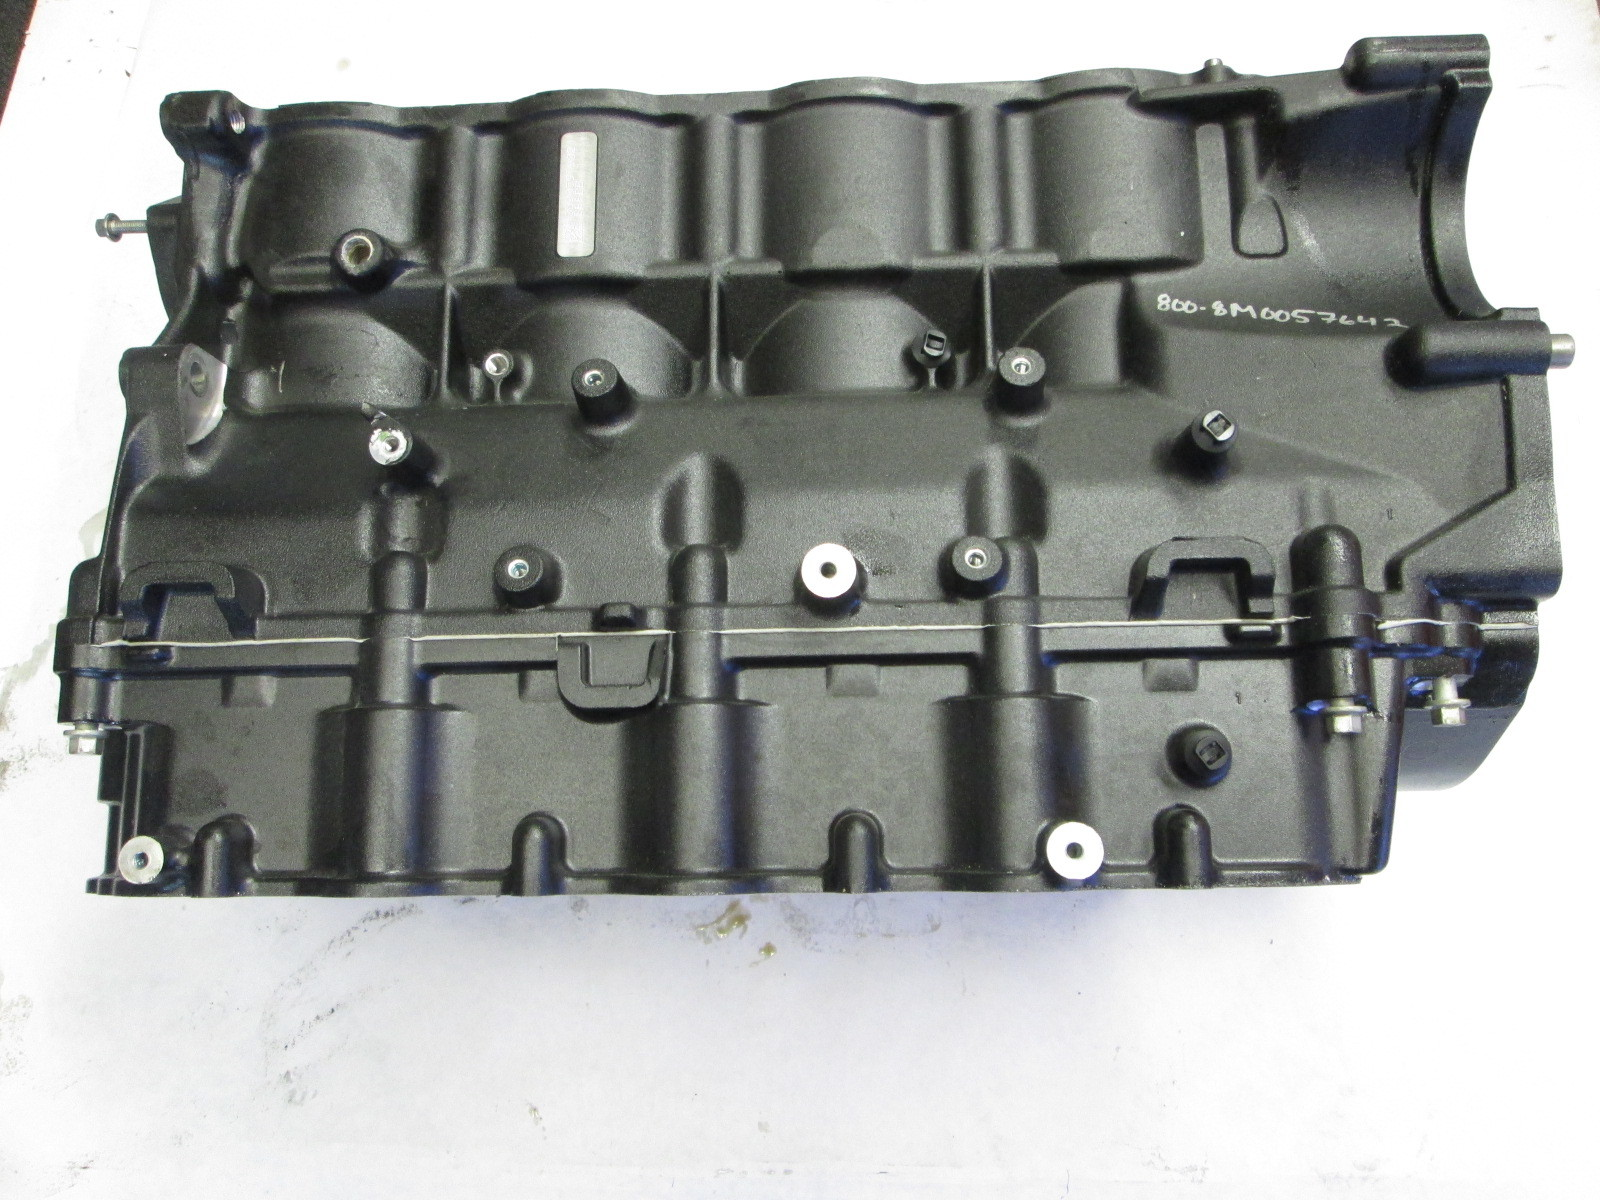 800 8m0057642 800 8m0057642 mercury mariner 150 hp 4 stroke v6 outboard cylinder block 800 8m0057642 mercury mariner 150 hp 4 stroke v6 outboard cylinder  at gsmportal.co